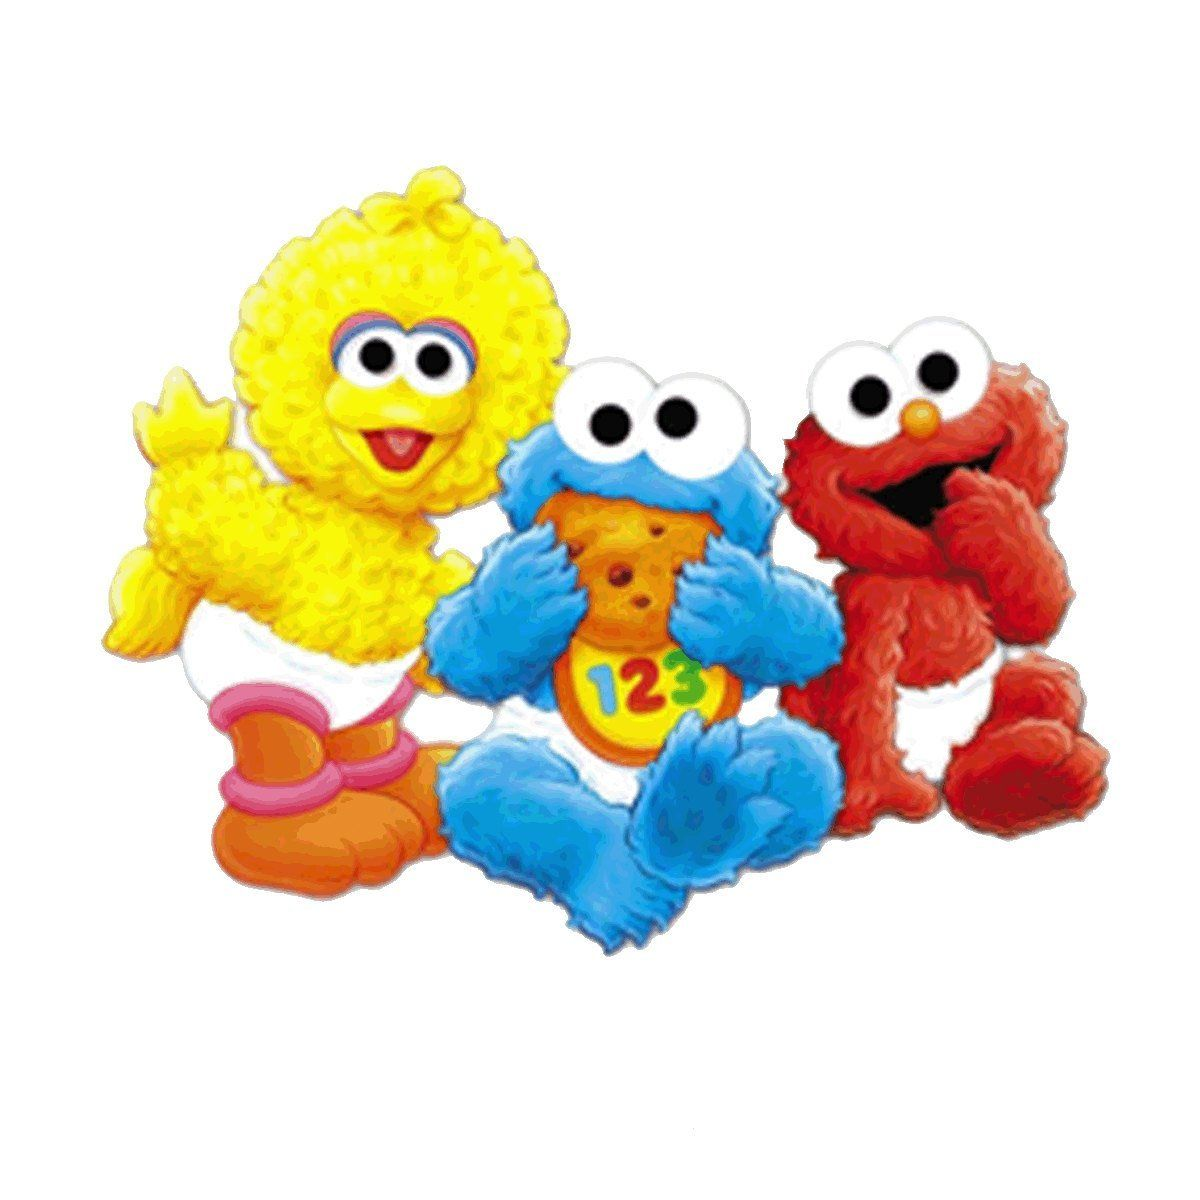 Baby Sesame Street Big Bird Cookie Monster Elmo Edible Cake Topper Frosting Sheet Birthday Party More Forbidden Discounts At The Link Of Image Baking